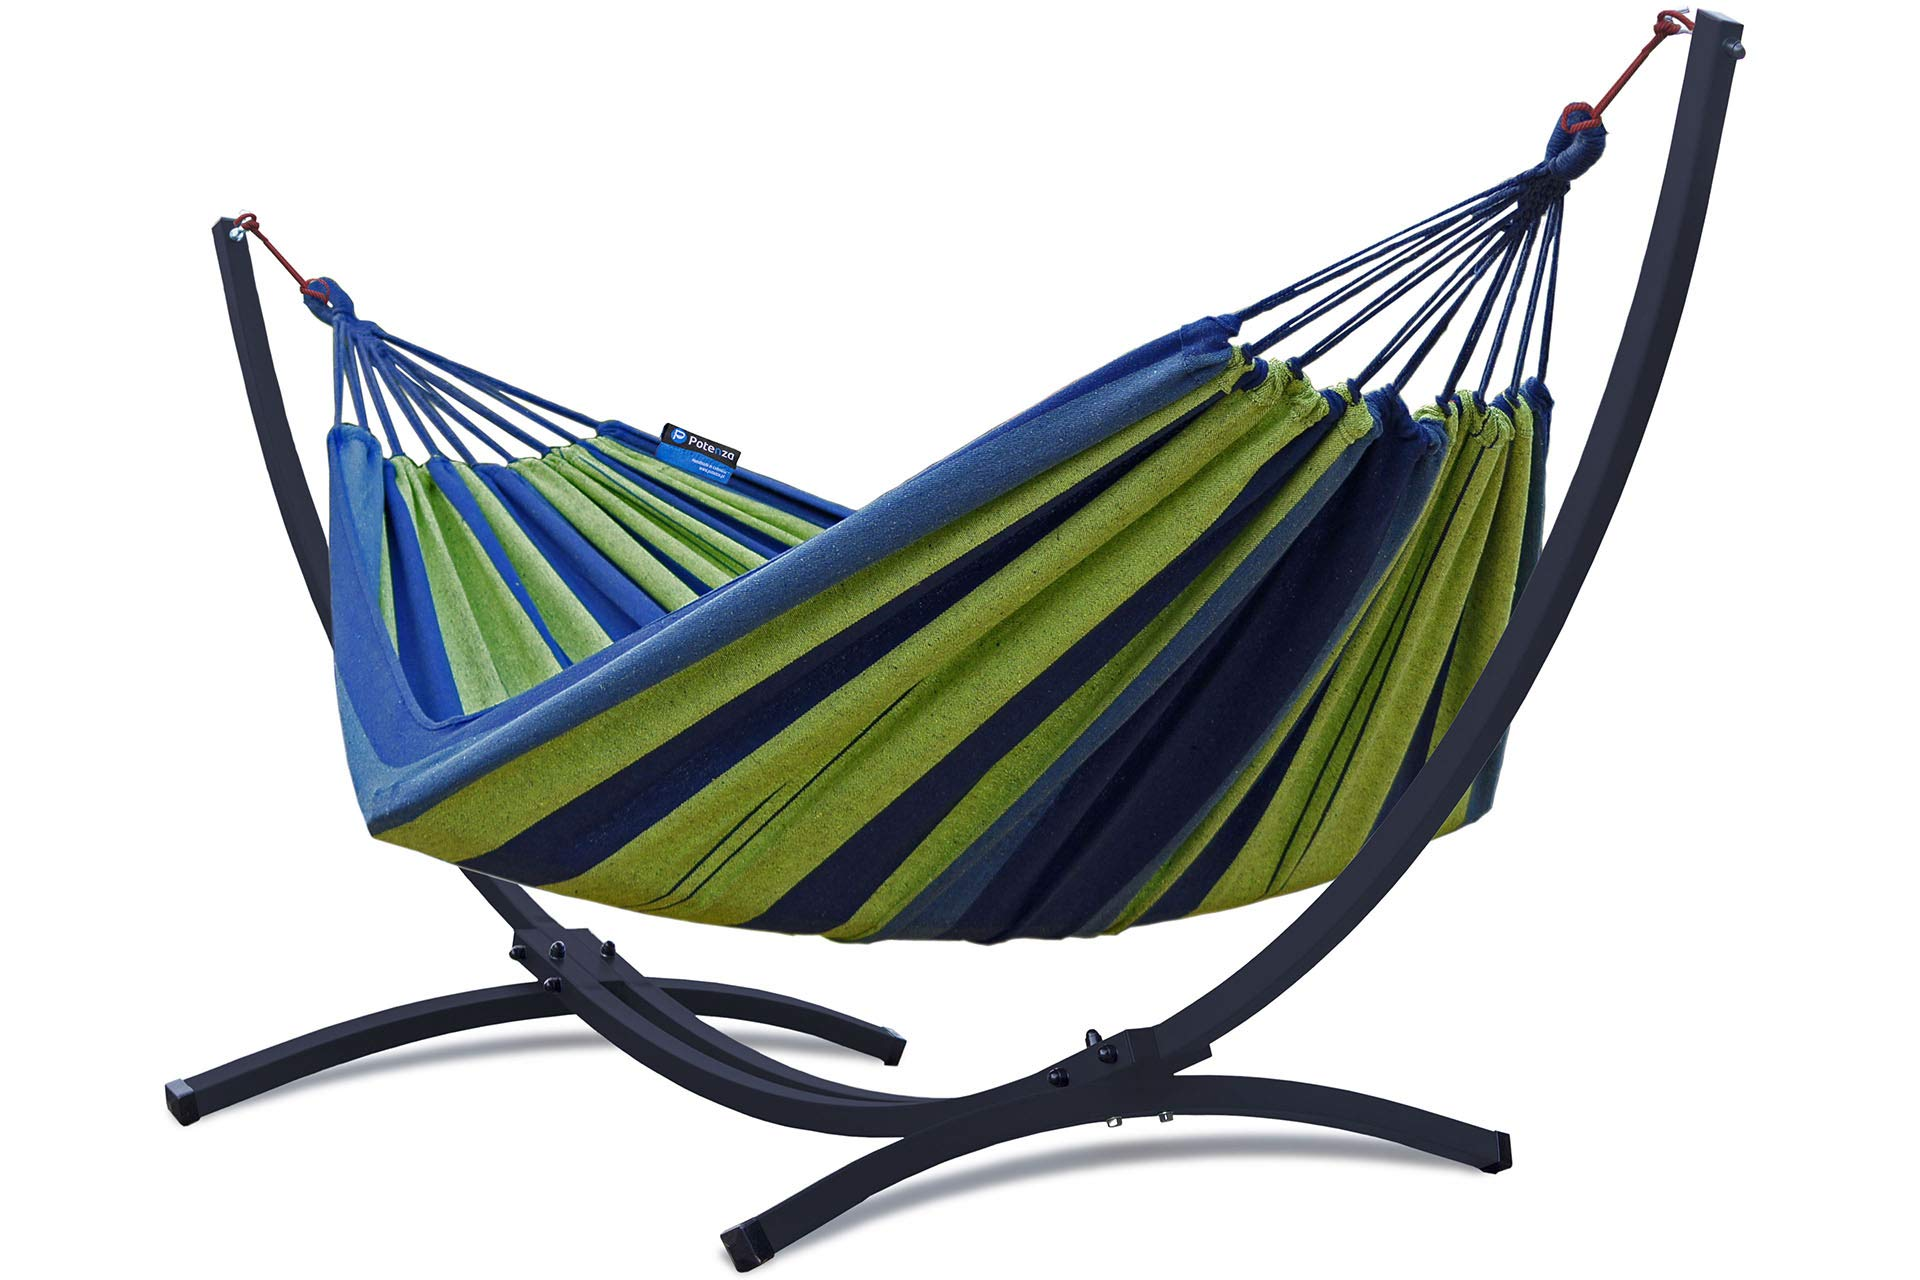 Colore Casuale ULOOIE Outdoor Amaca in Rete in Nylon ad Alta Resistenza Camping Sleeping Lounge Hanging Bed